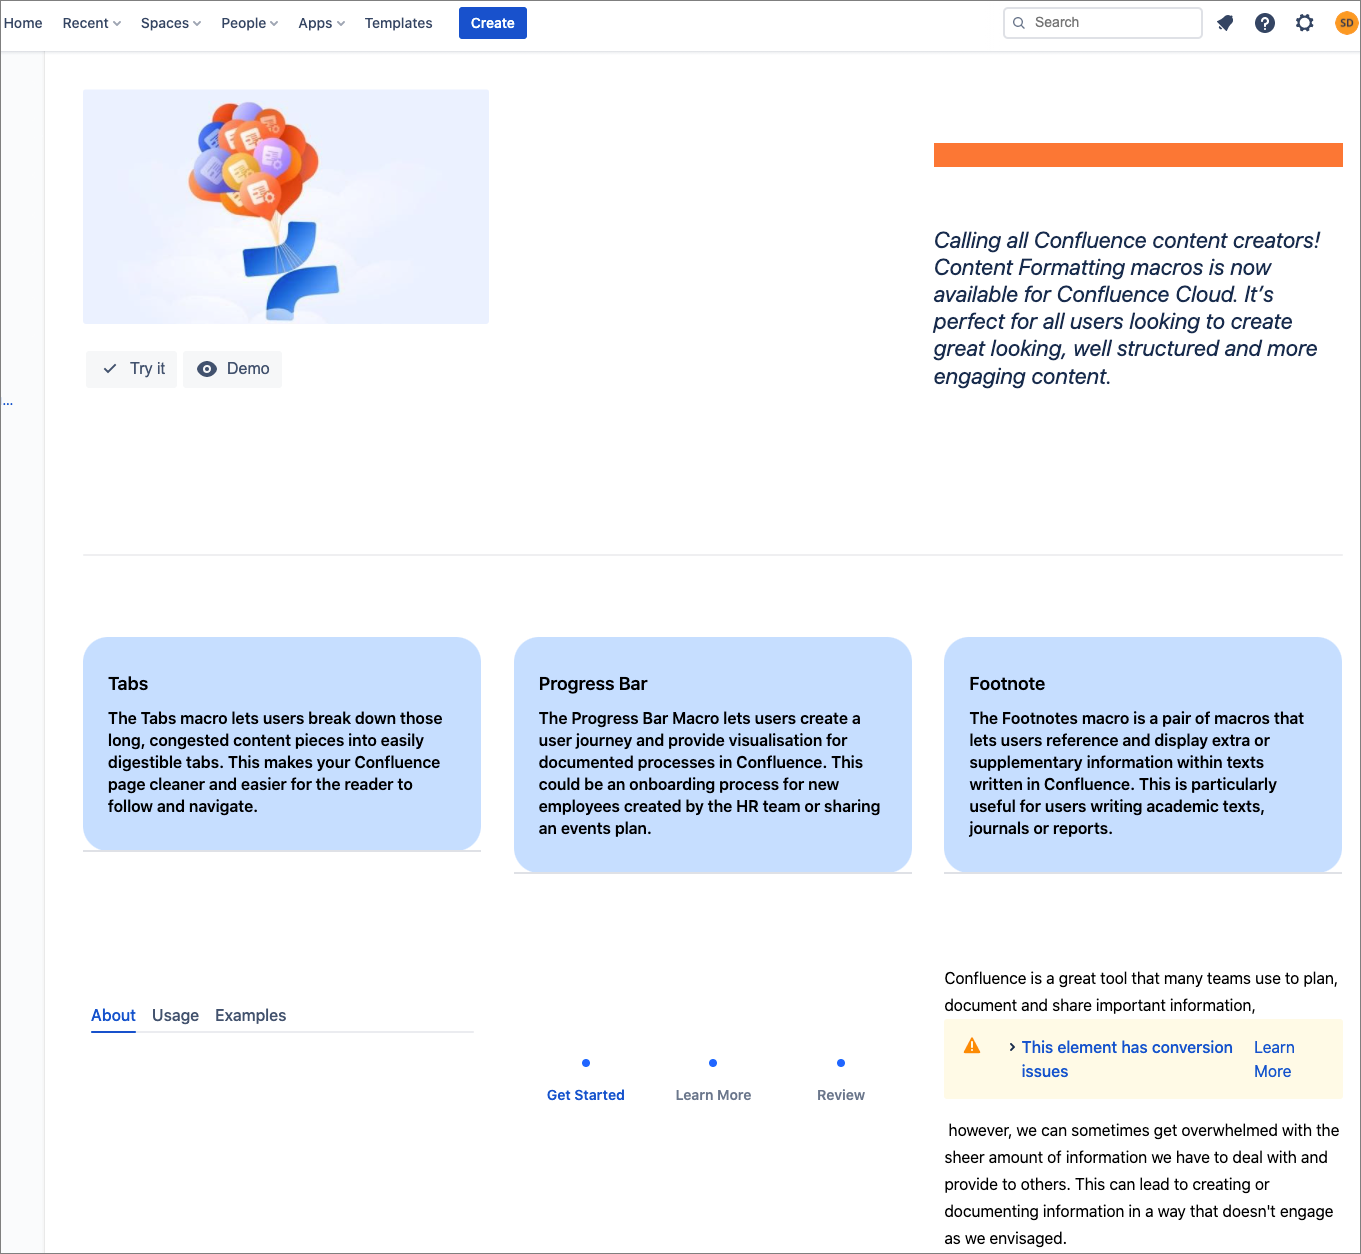 A migrated Confluence page that was converted to the new cloud editor